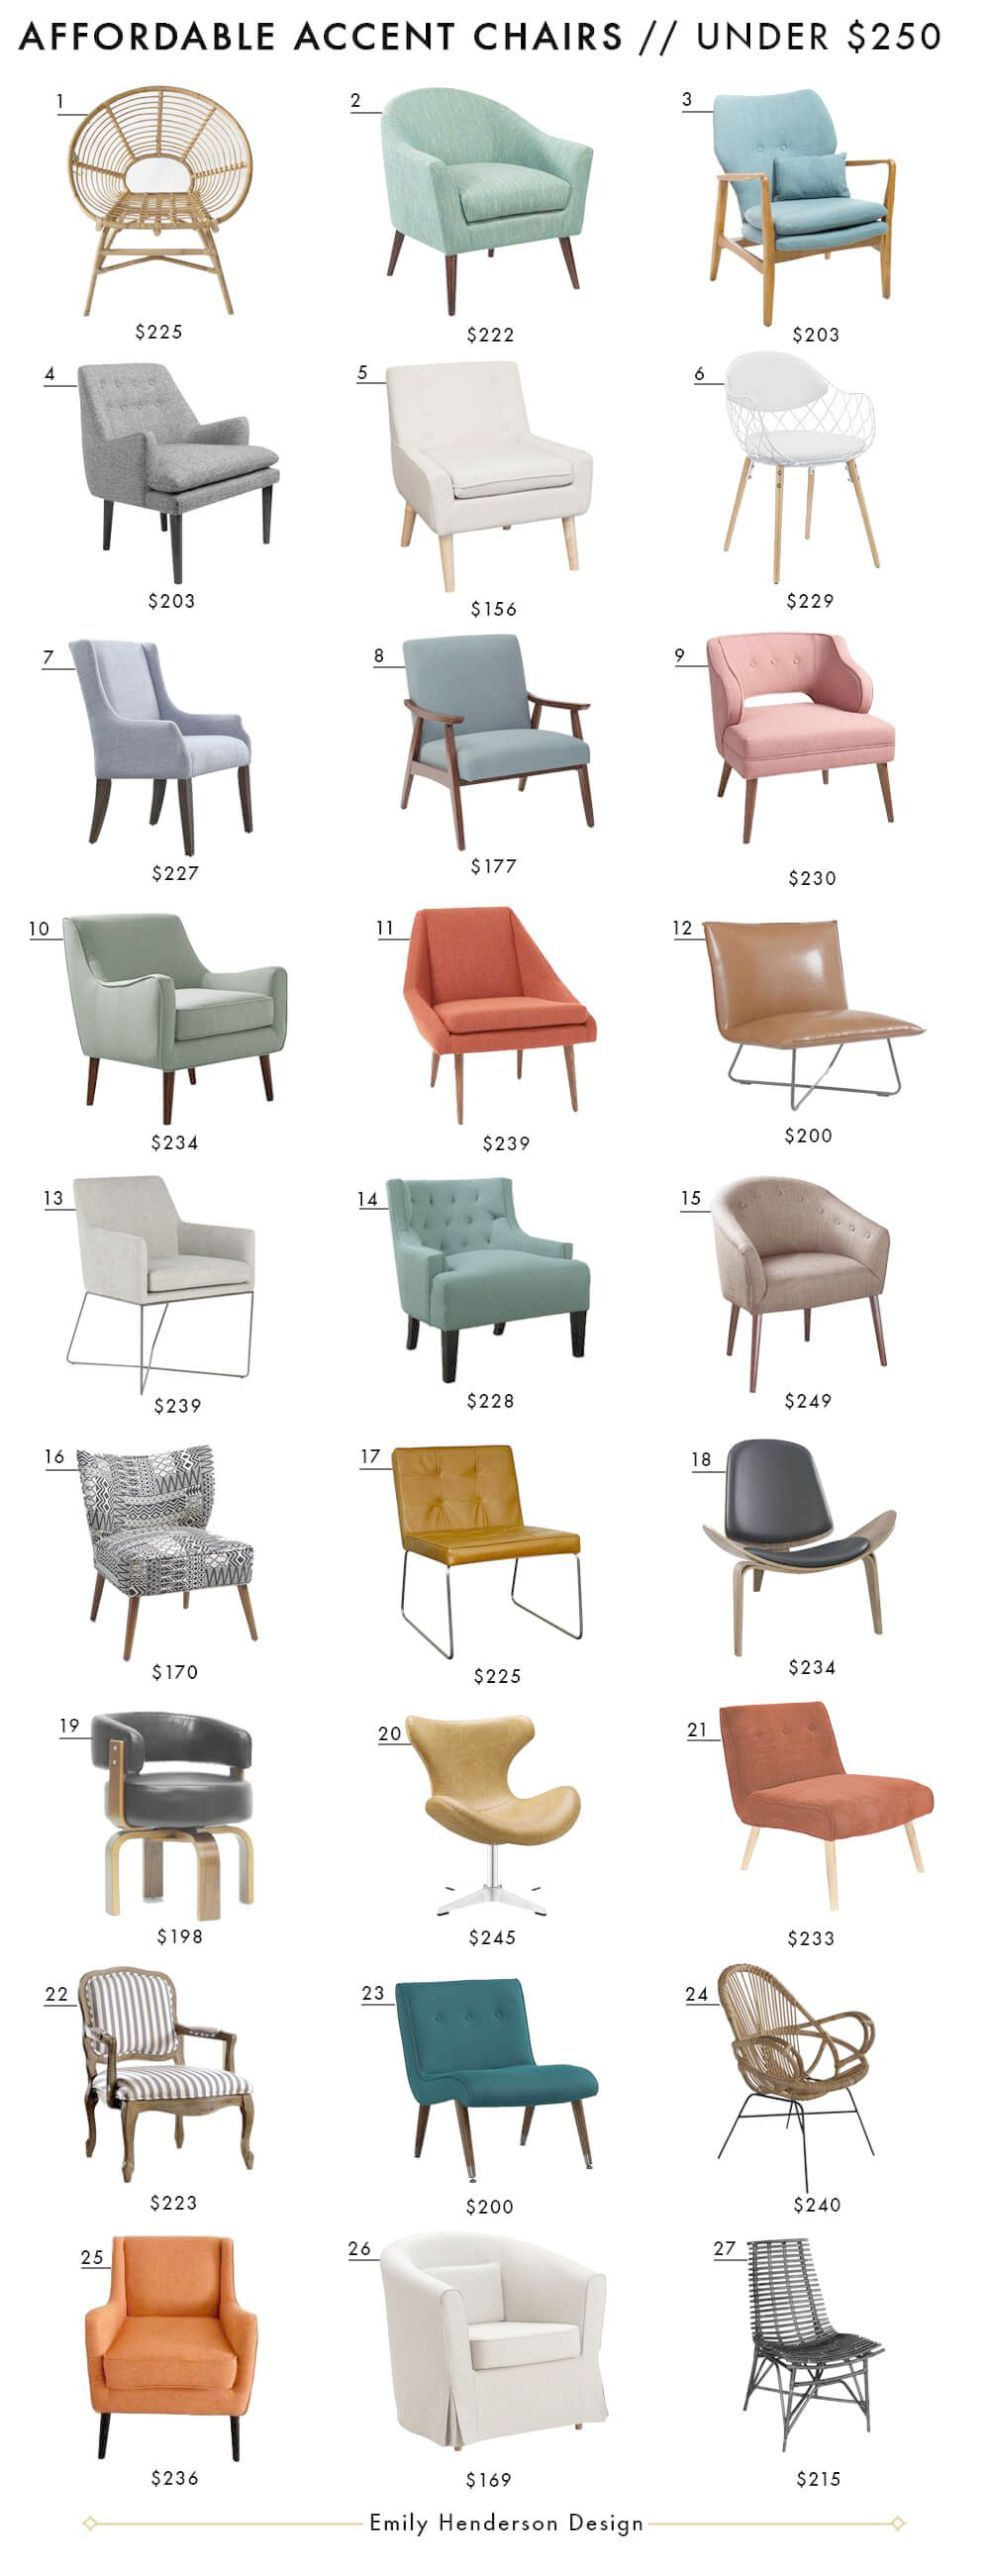 Home Decor And Furniture Stores Near Me Onto Interior Design Ideas Living Room Fla Accent Chairs For Living Room Living Room Decor Apartment Living Room Chairs